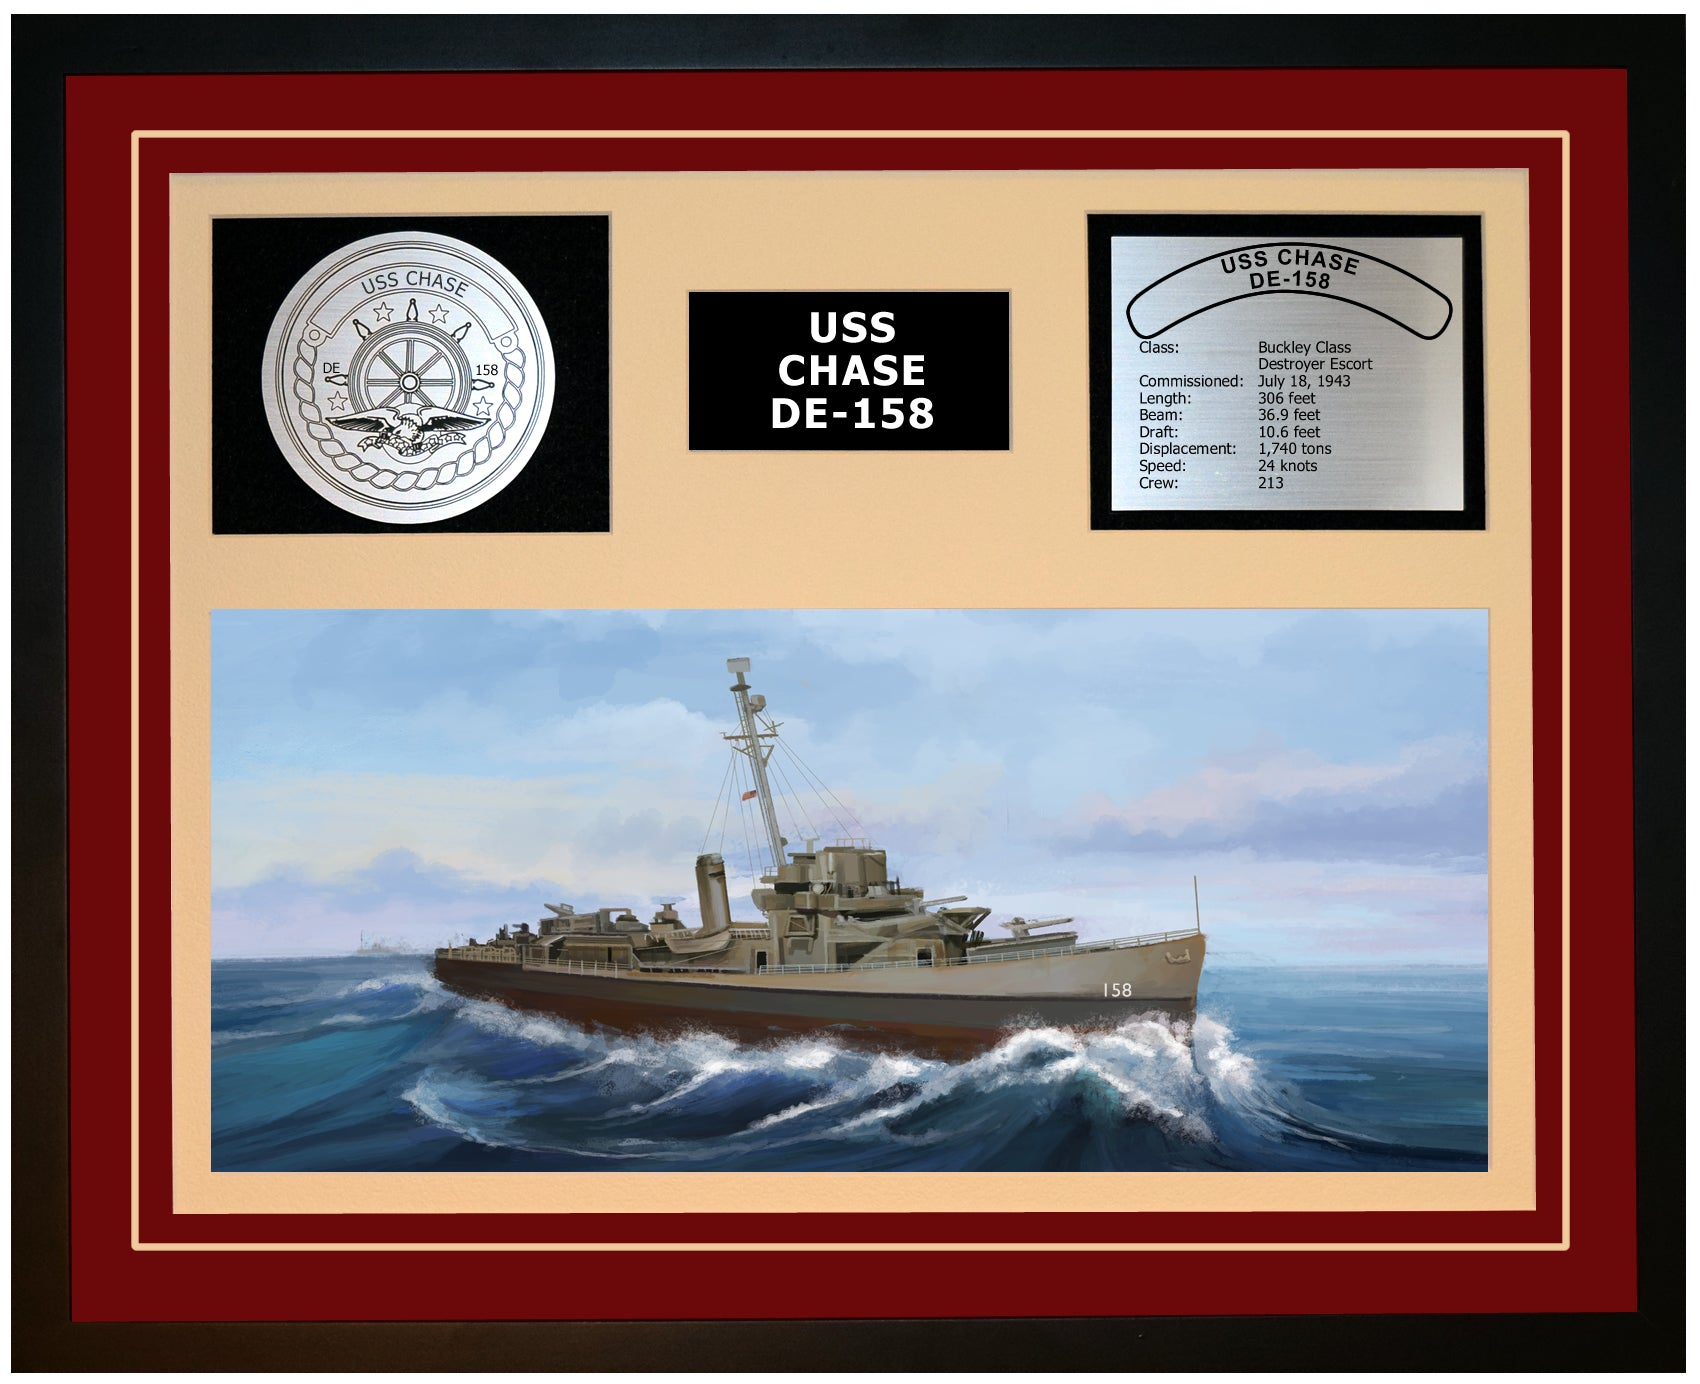 USS CHASE DE-158 Framed Navy Ship Display Burgundy